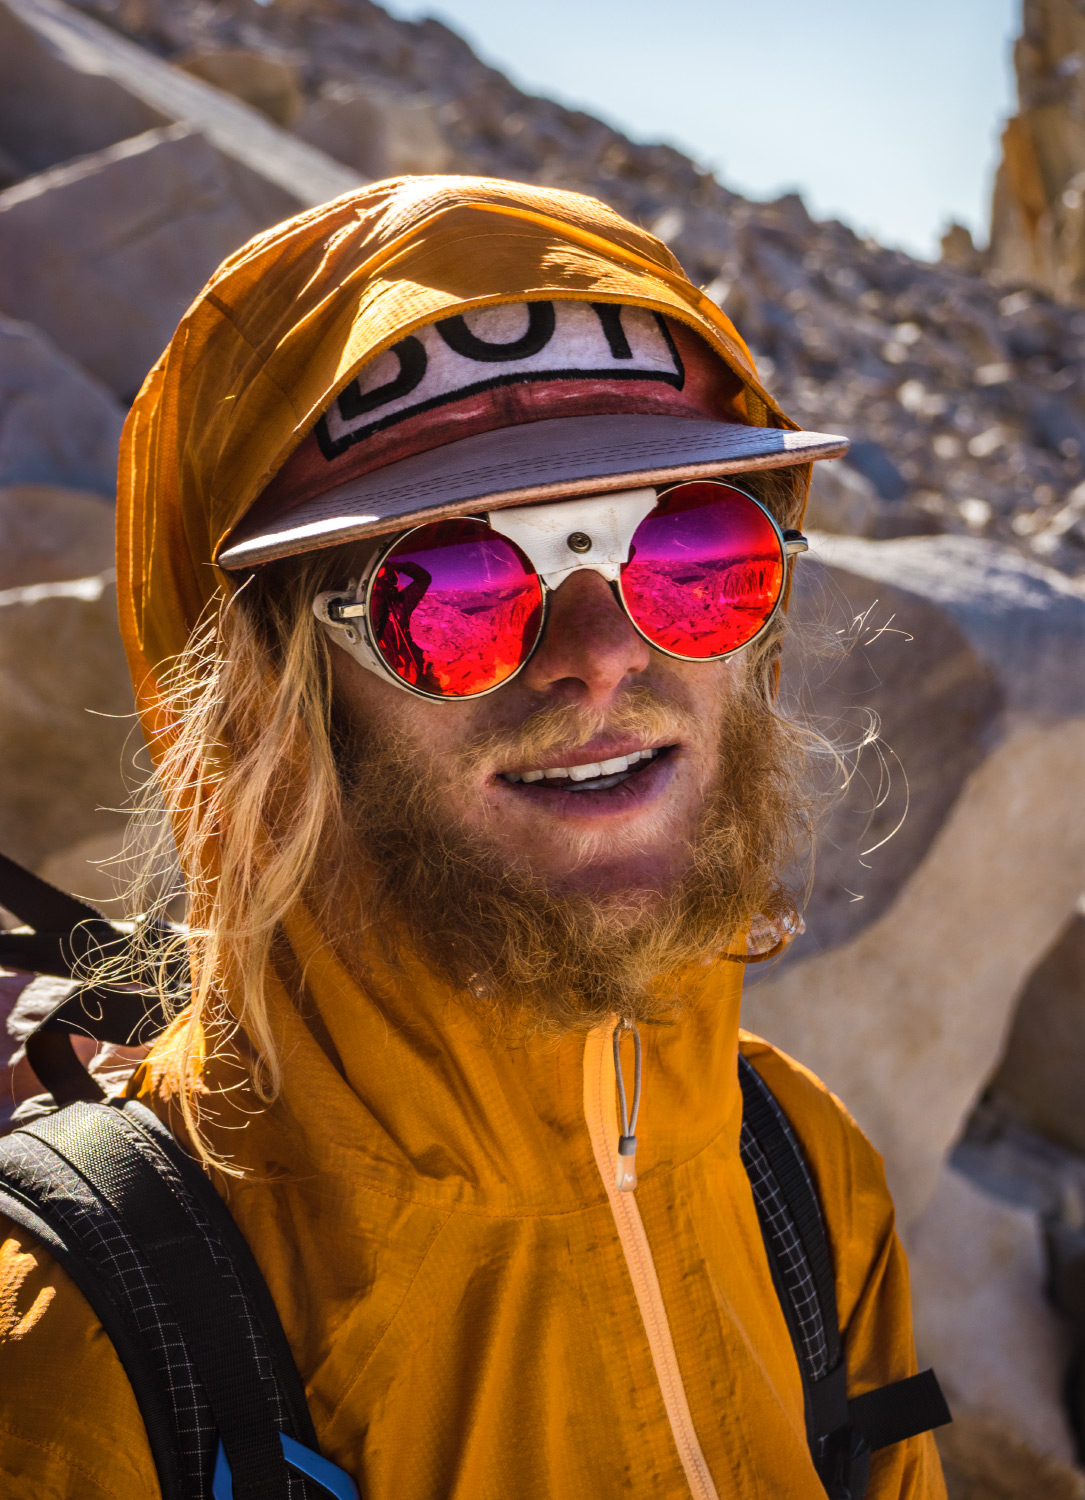 Adam Kernes Mount Whitney glacier glasses portrait